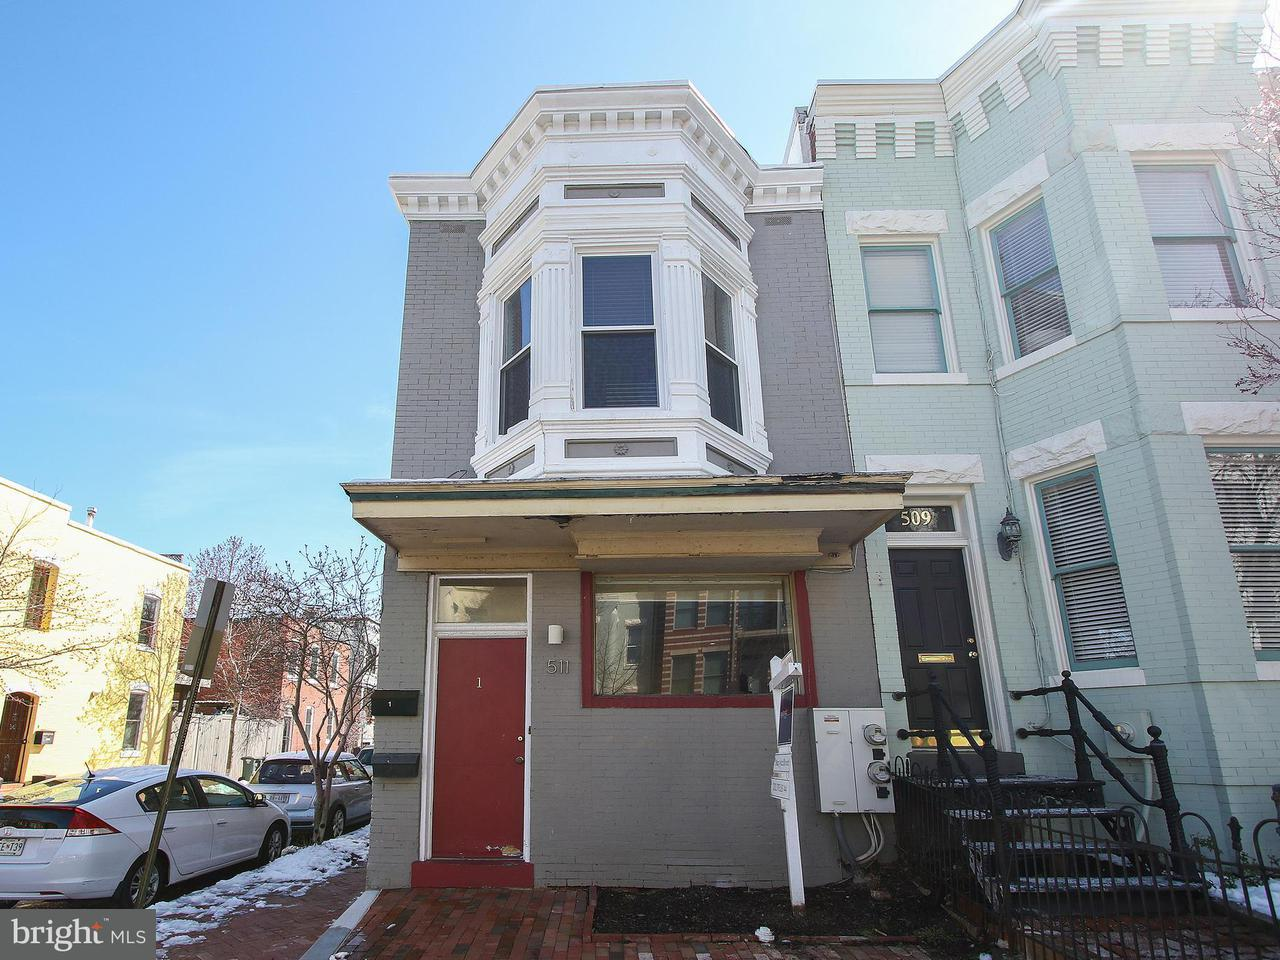 Multi-Family Home for Sale at 511 6th St Ne 511 6th St Ne Washington, District Of Columbia 20002 United States